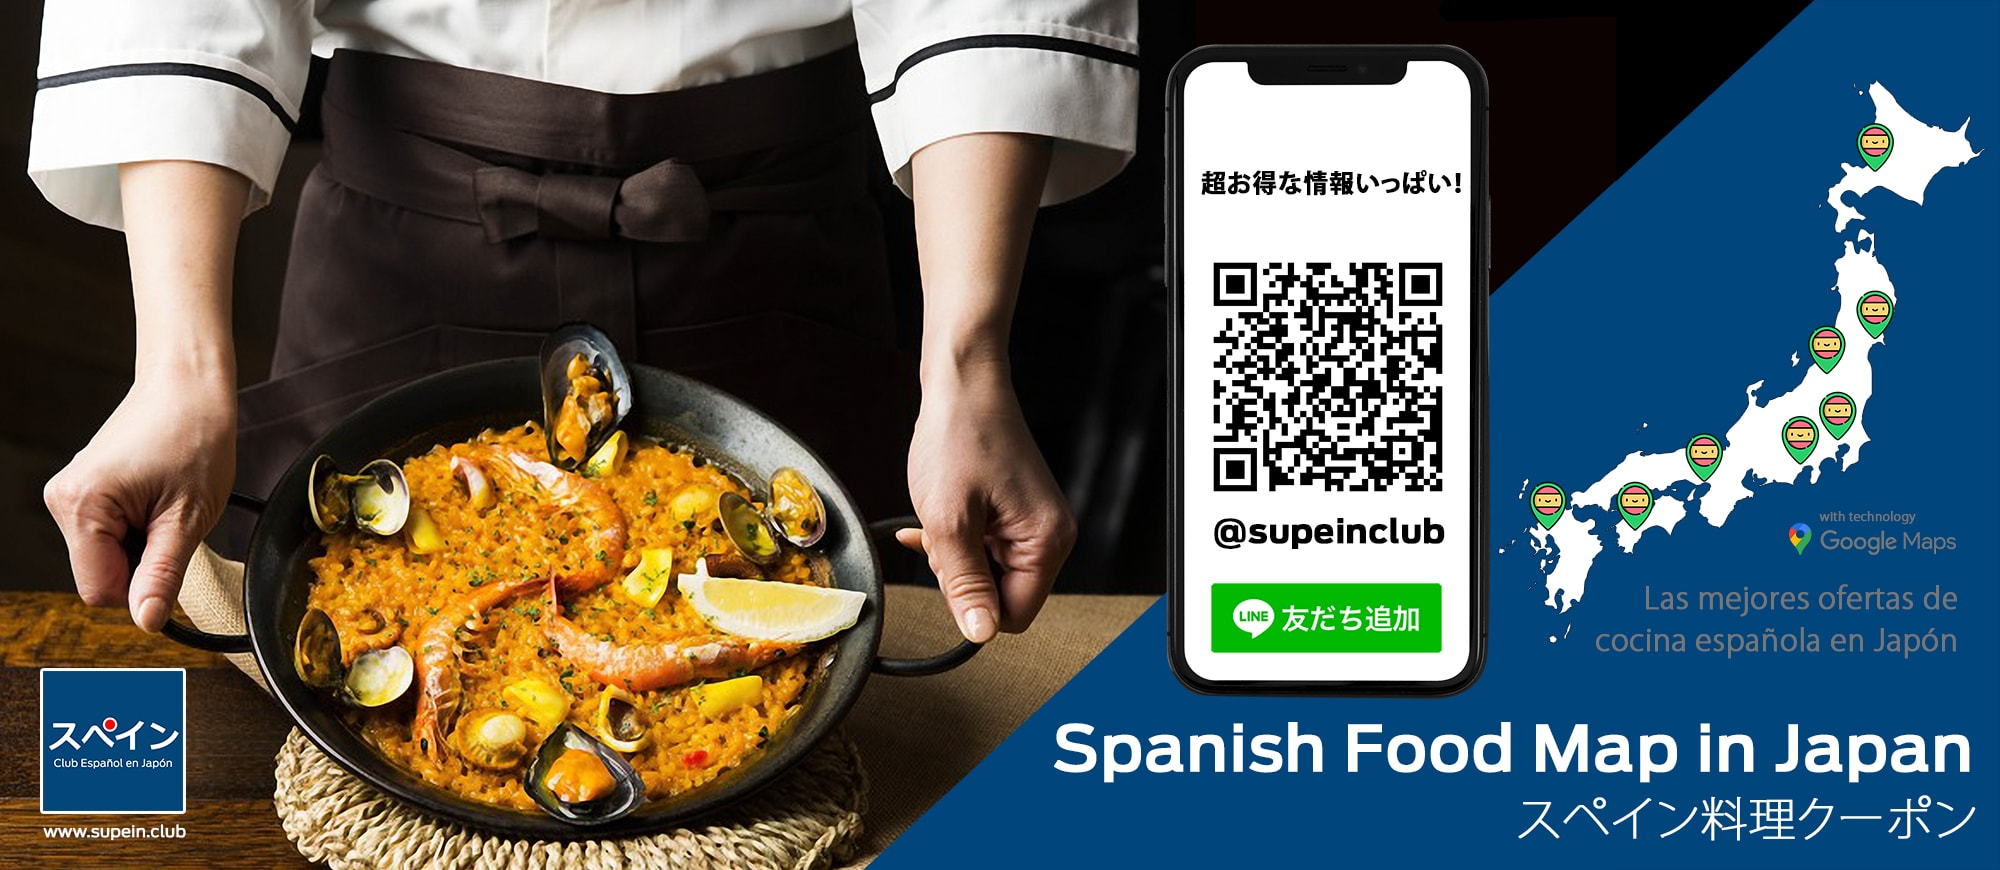 Spanish Food Map in Japan